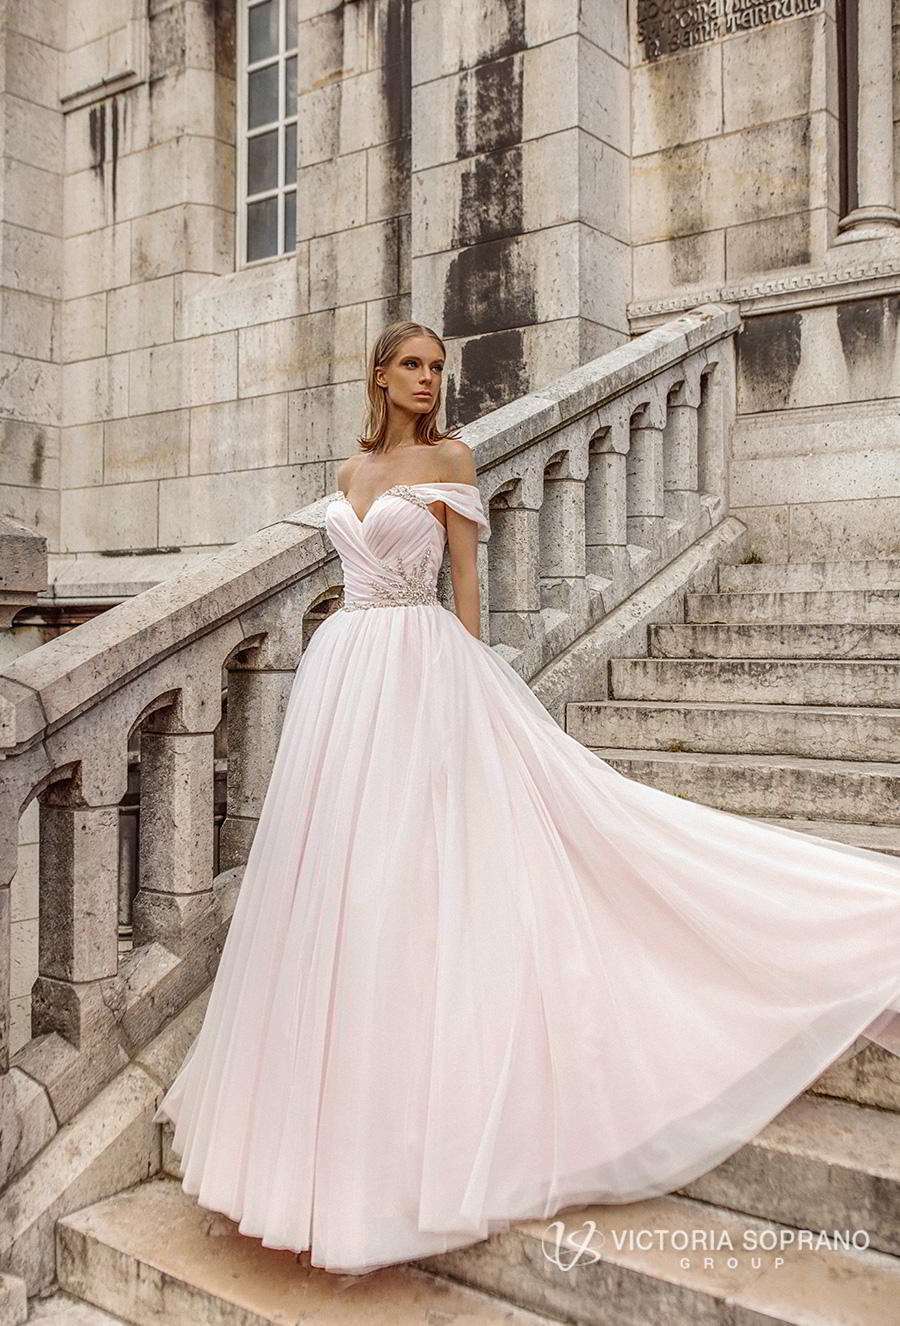 victoria soprano 2019 bridal off the shoulder sweetheart neckline ruched wrap over bodice romantic blush ball gown wedding dress chapel train (estel) mv